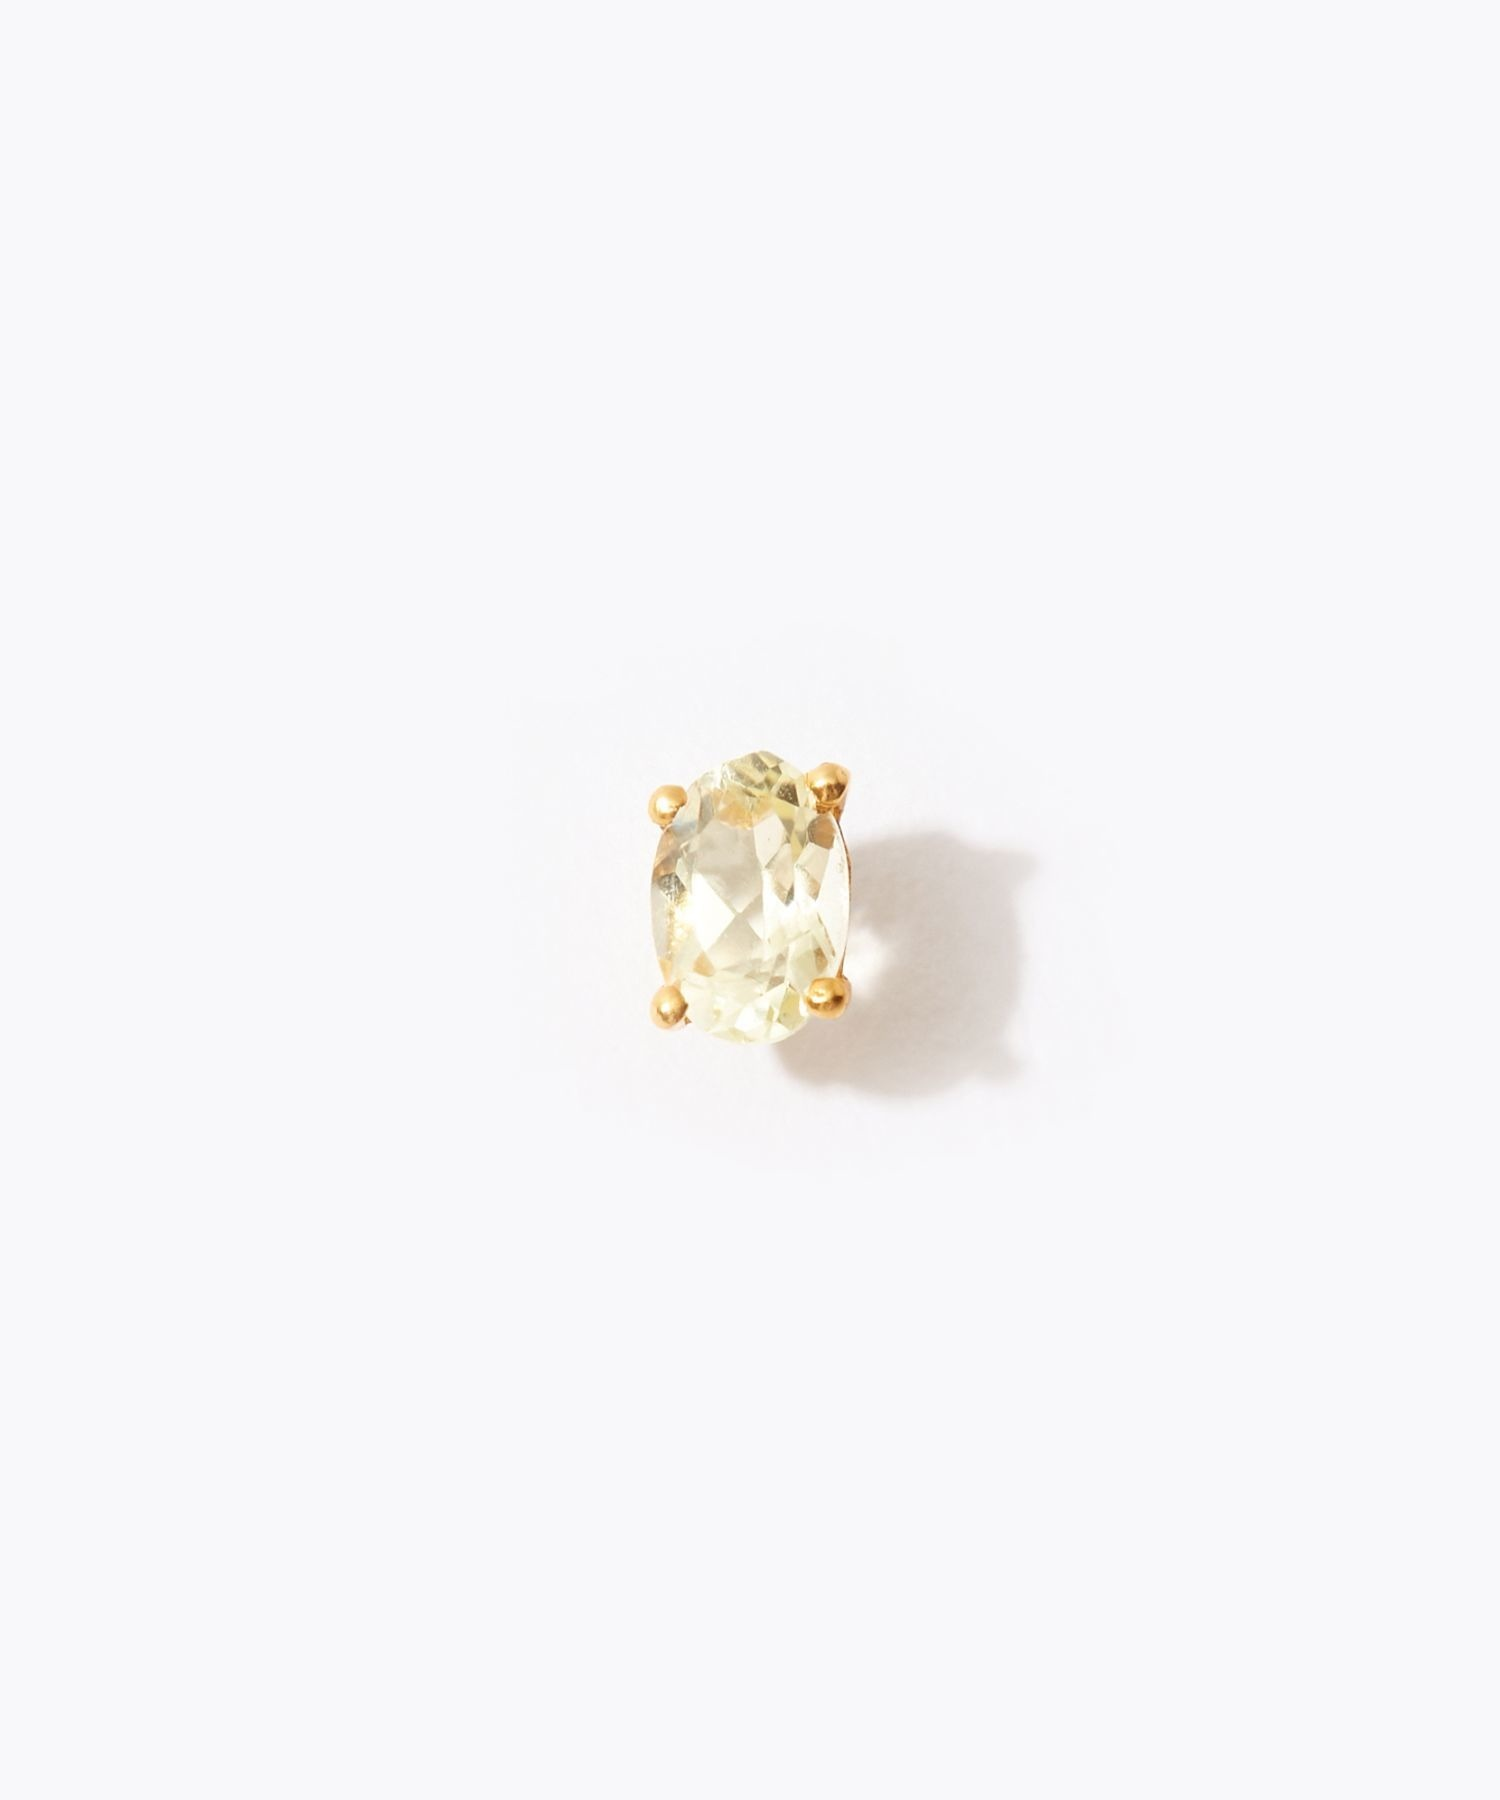 [eden] K10 oval lemon quartz stud pierced earring